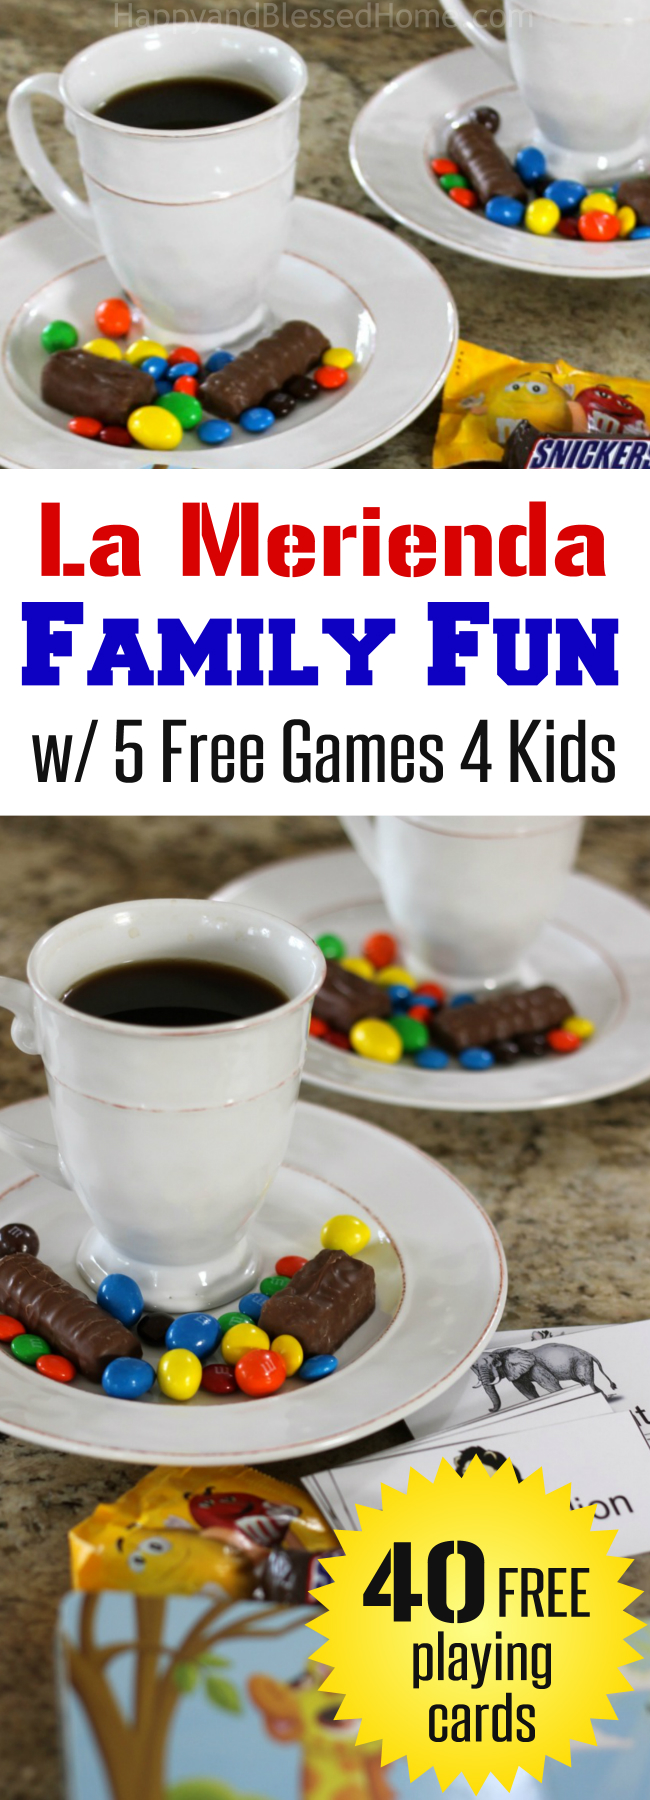 La Merienda Family Fun with 5 free games for kids and parents to play to learn Spanish from HappyandBlessedHome.com